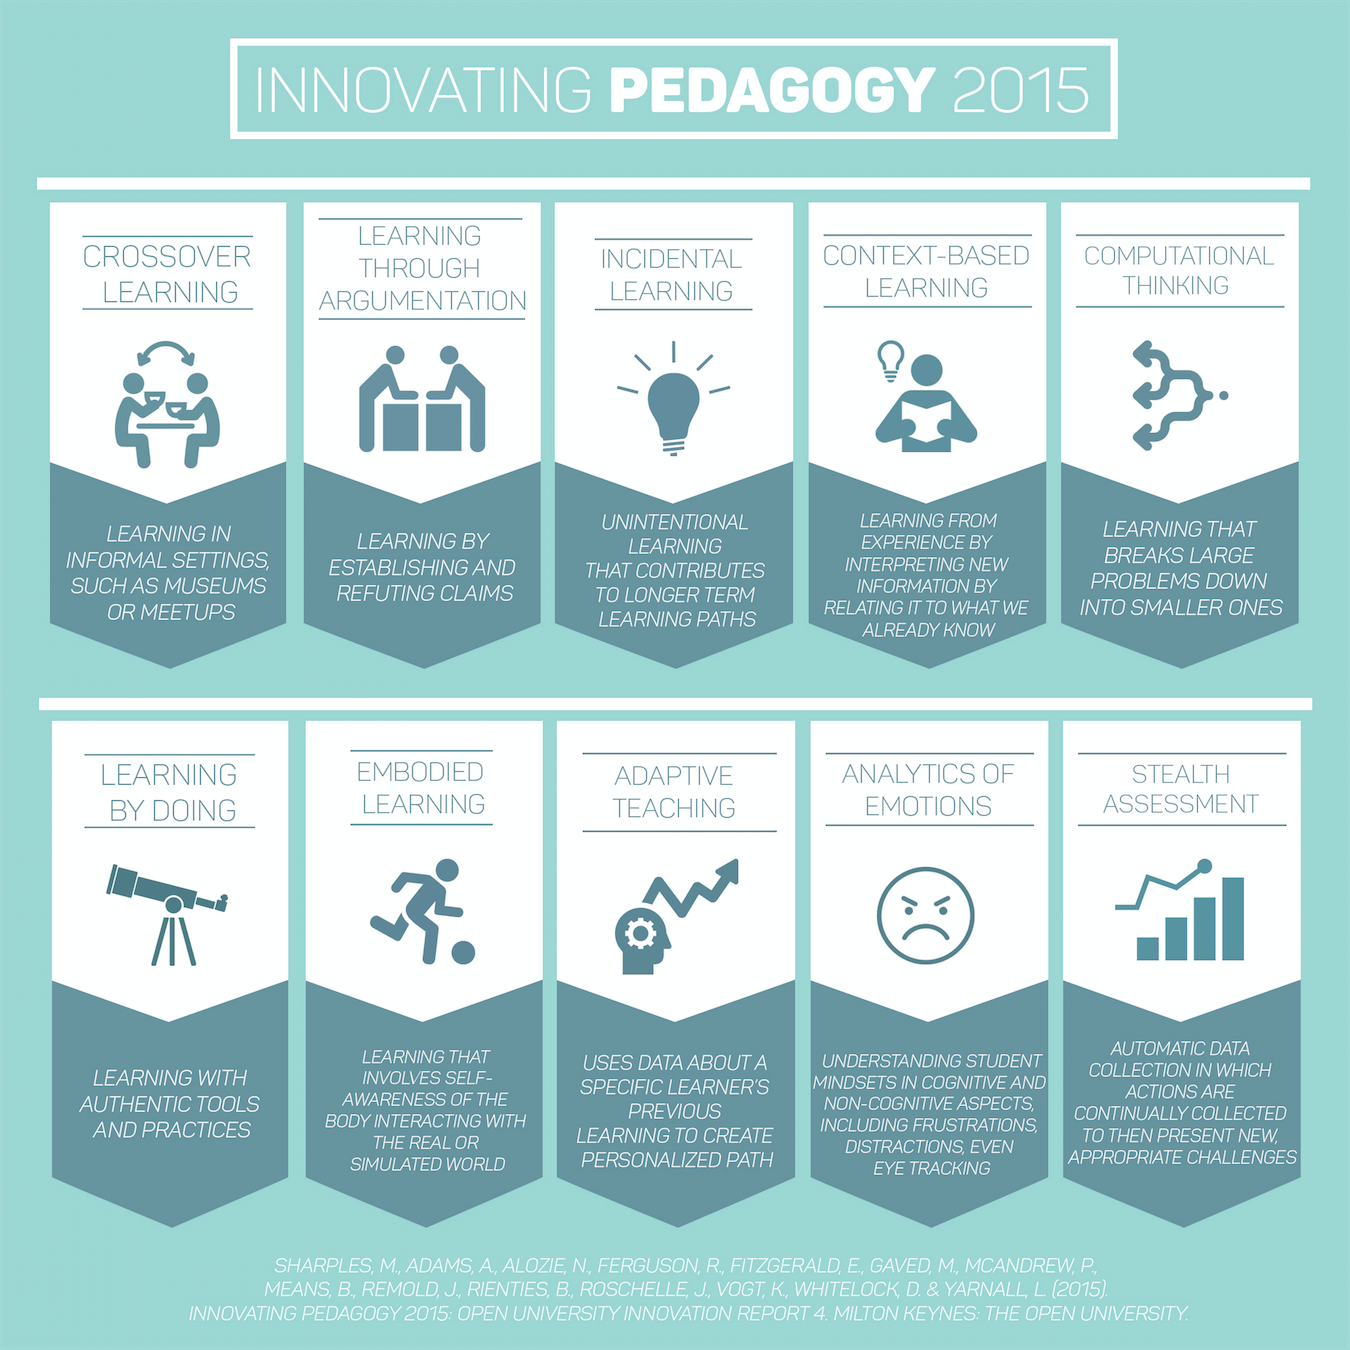 Ten Teaching Trends From The Innovating Pedagogy Report Teach Online